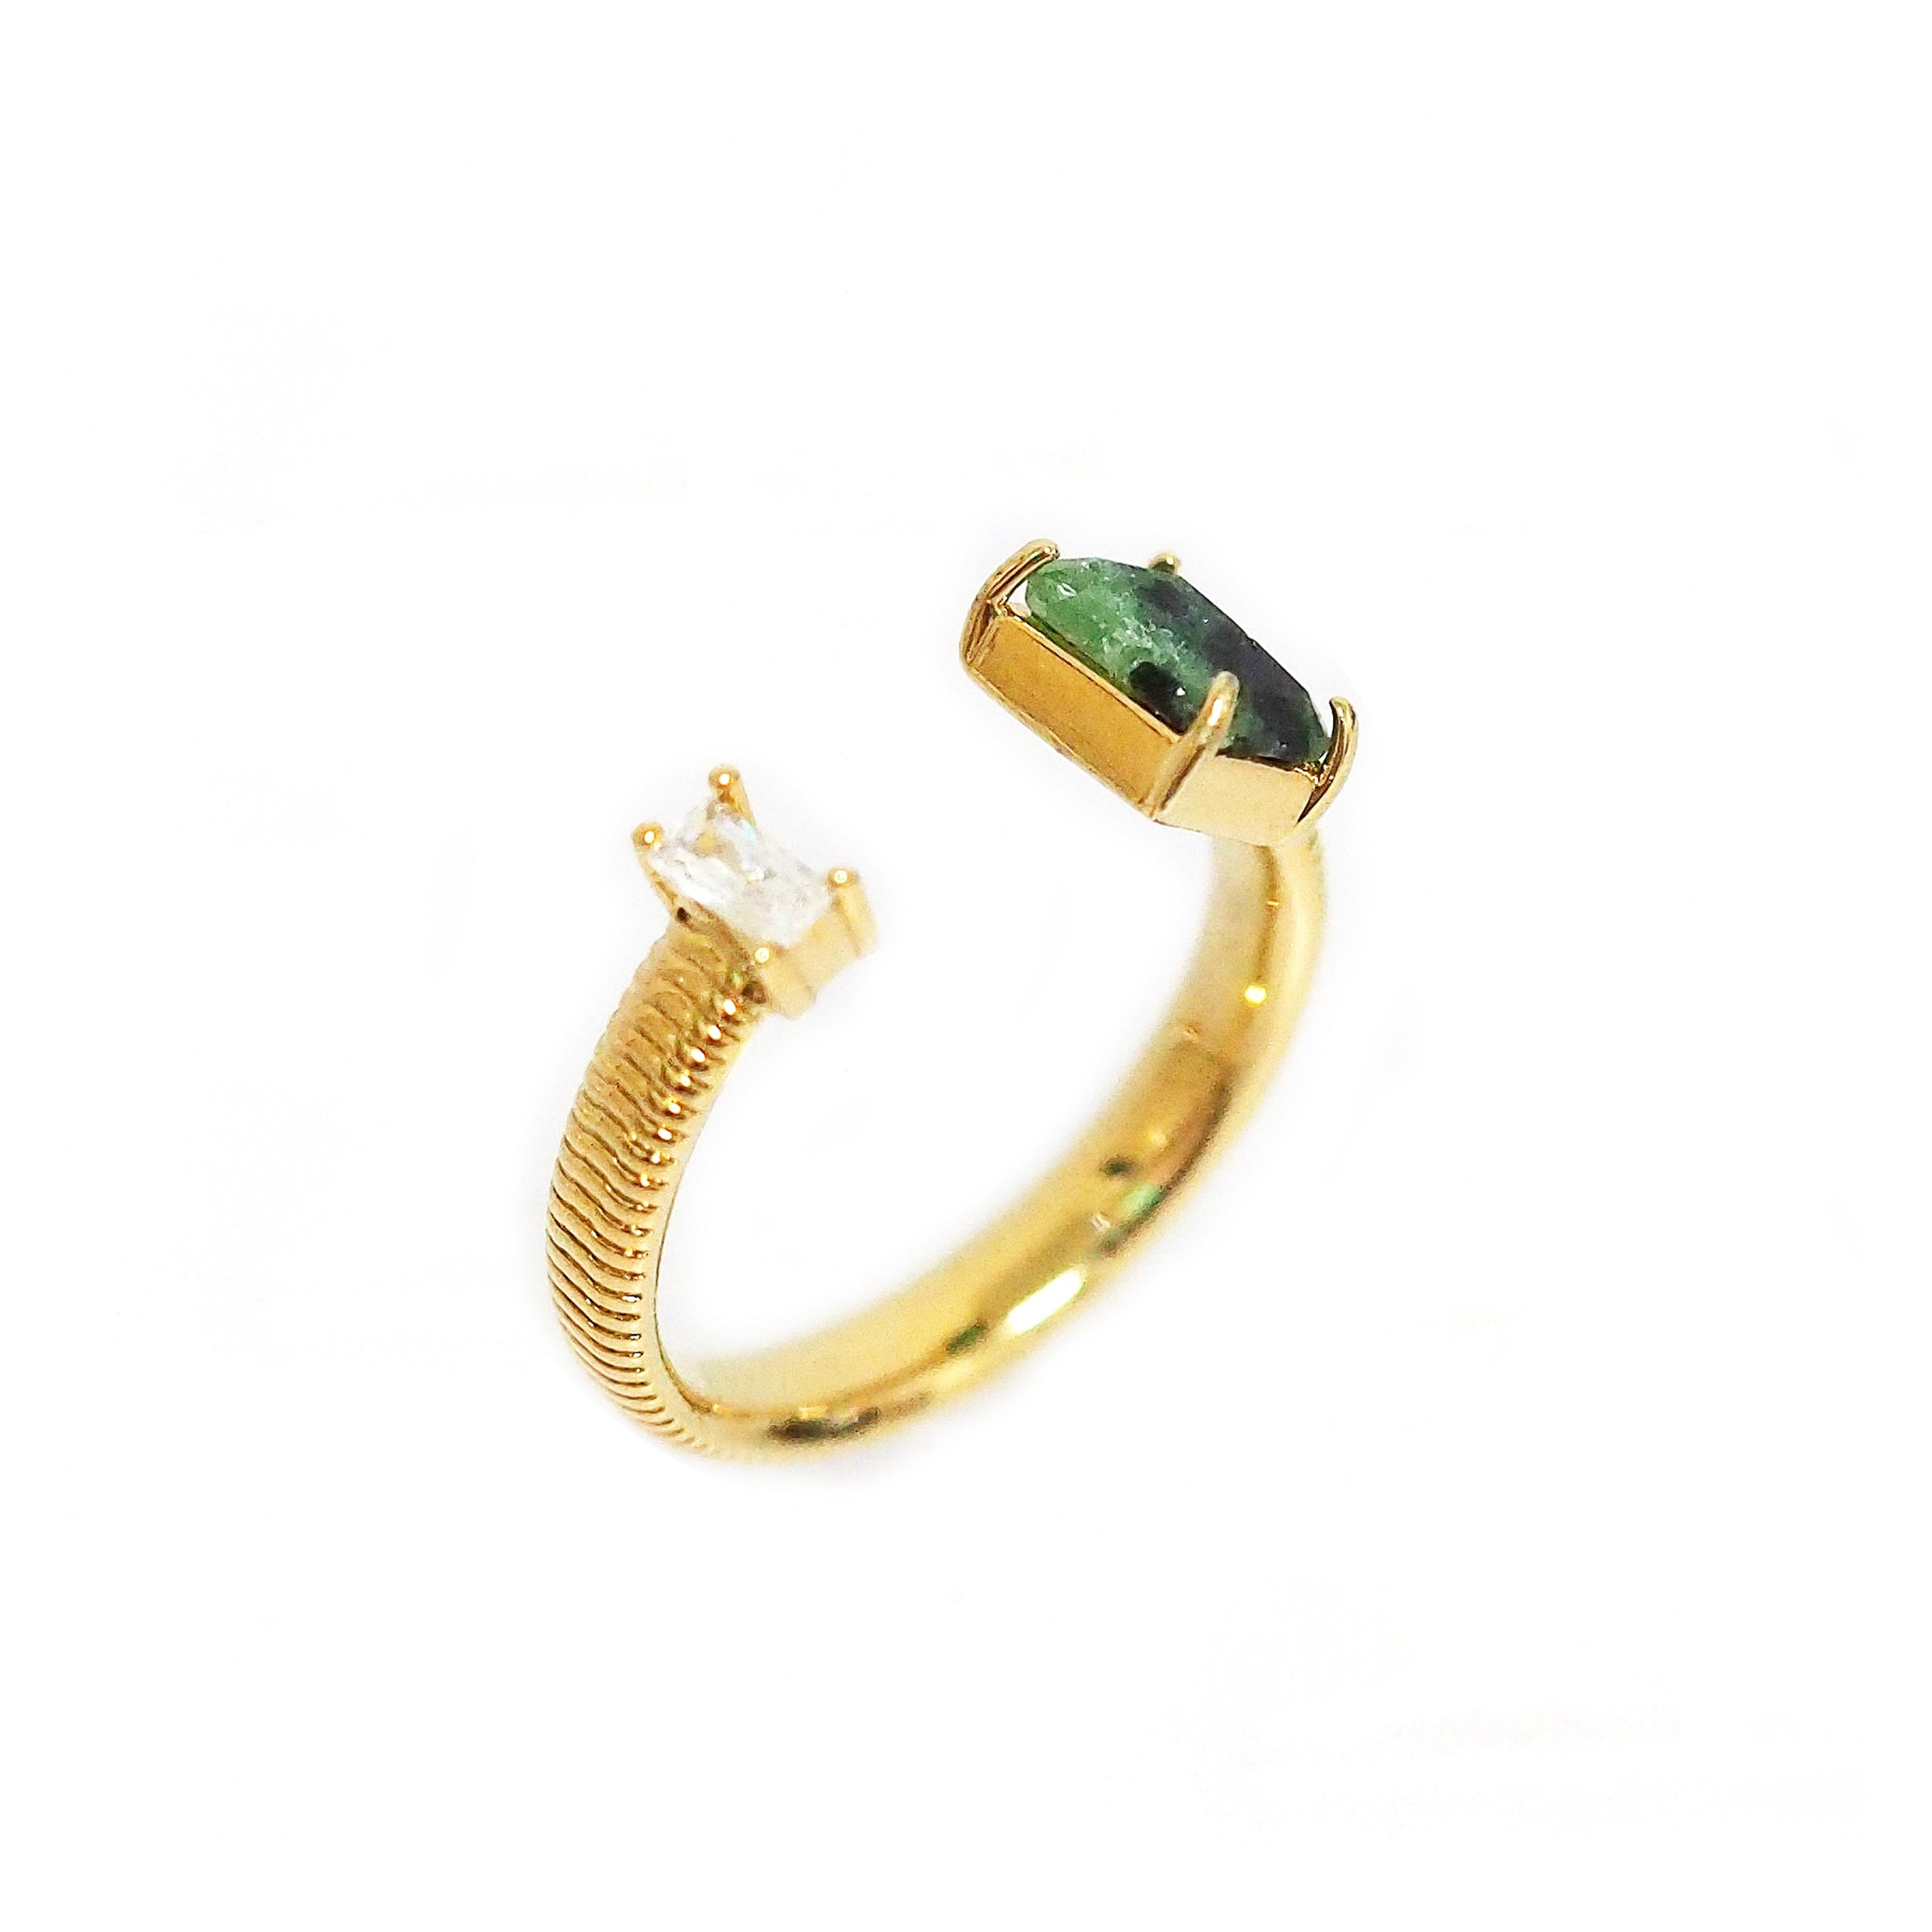 Green Stone and CZ Snake Chain Ring, Gold Tone, by Tai Design